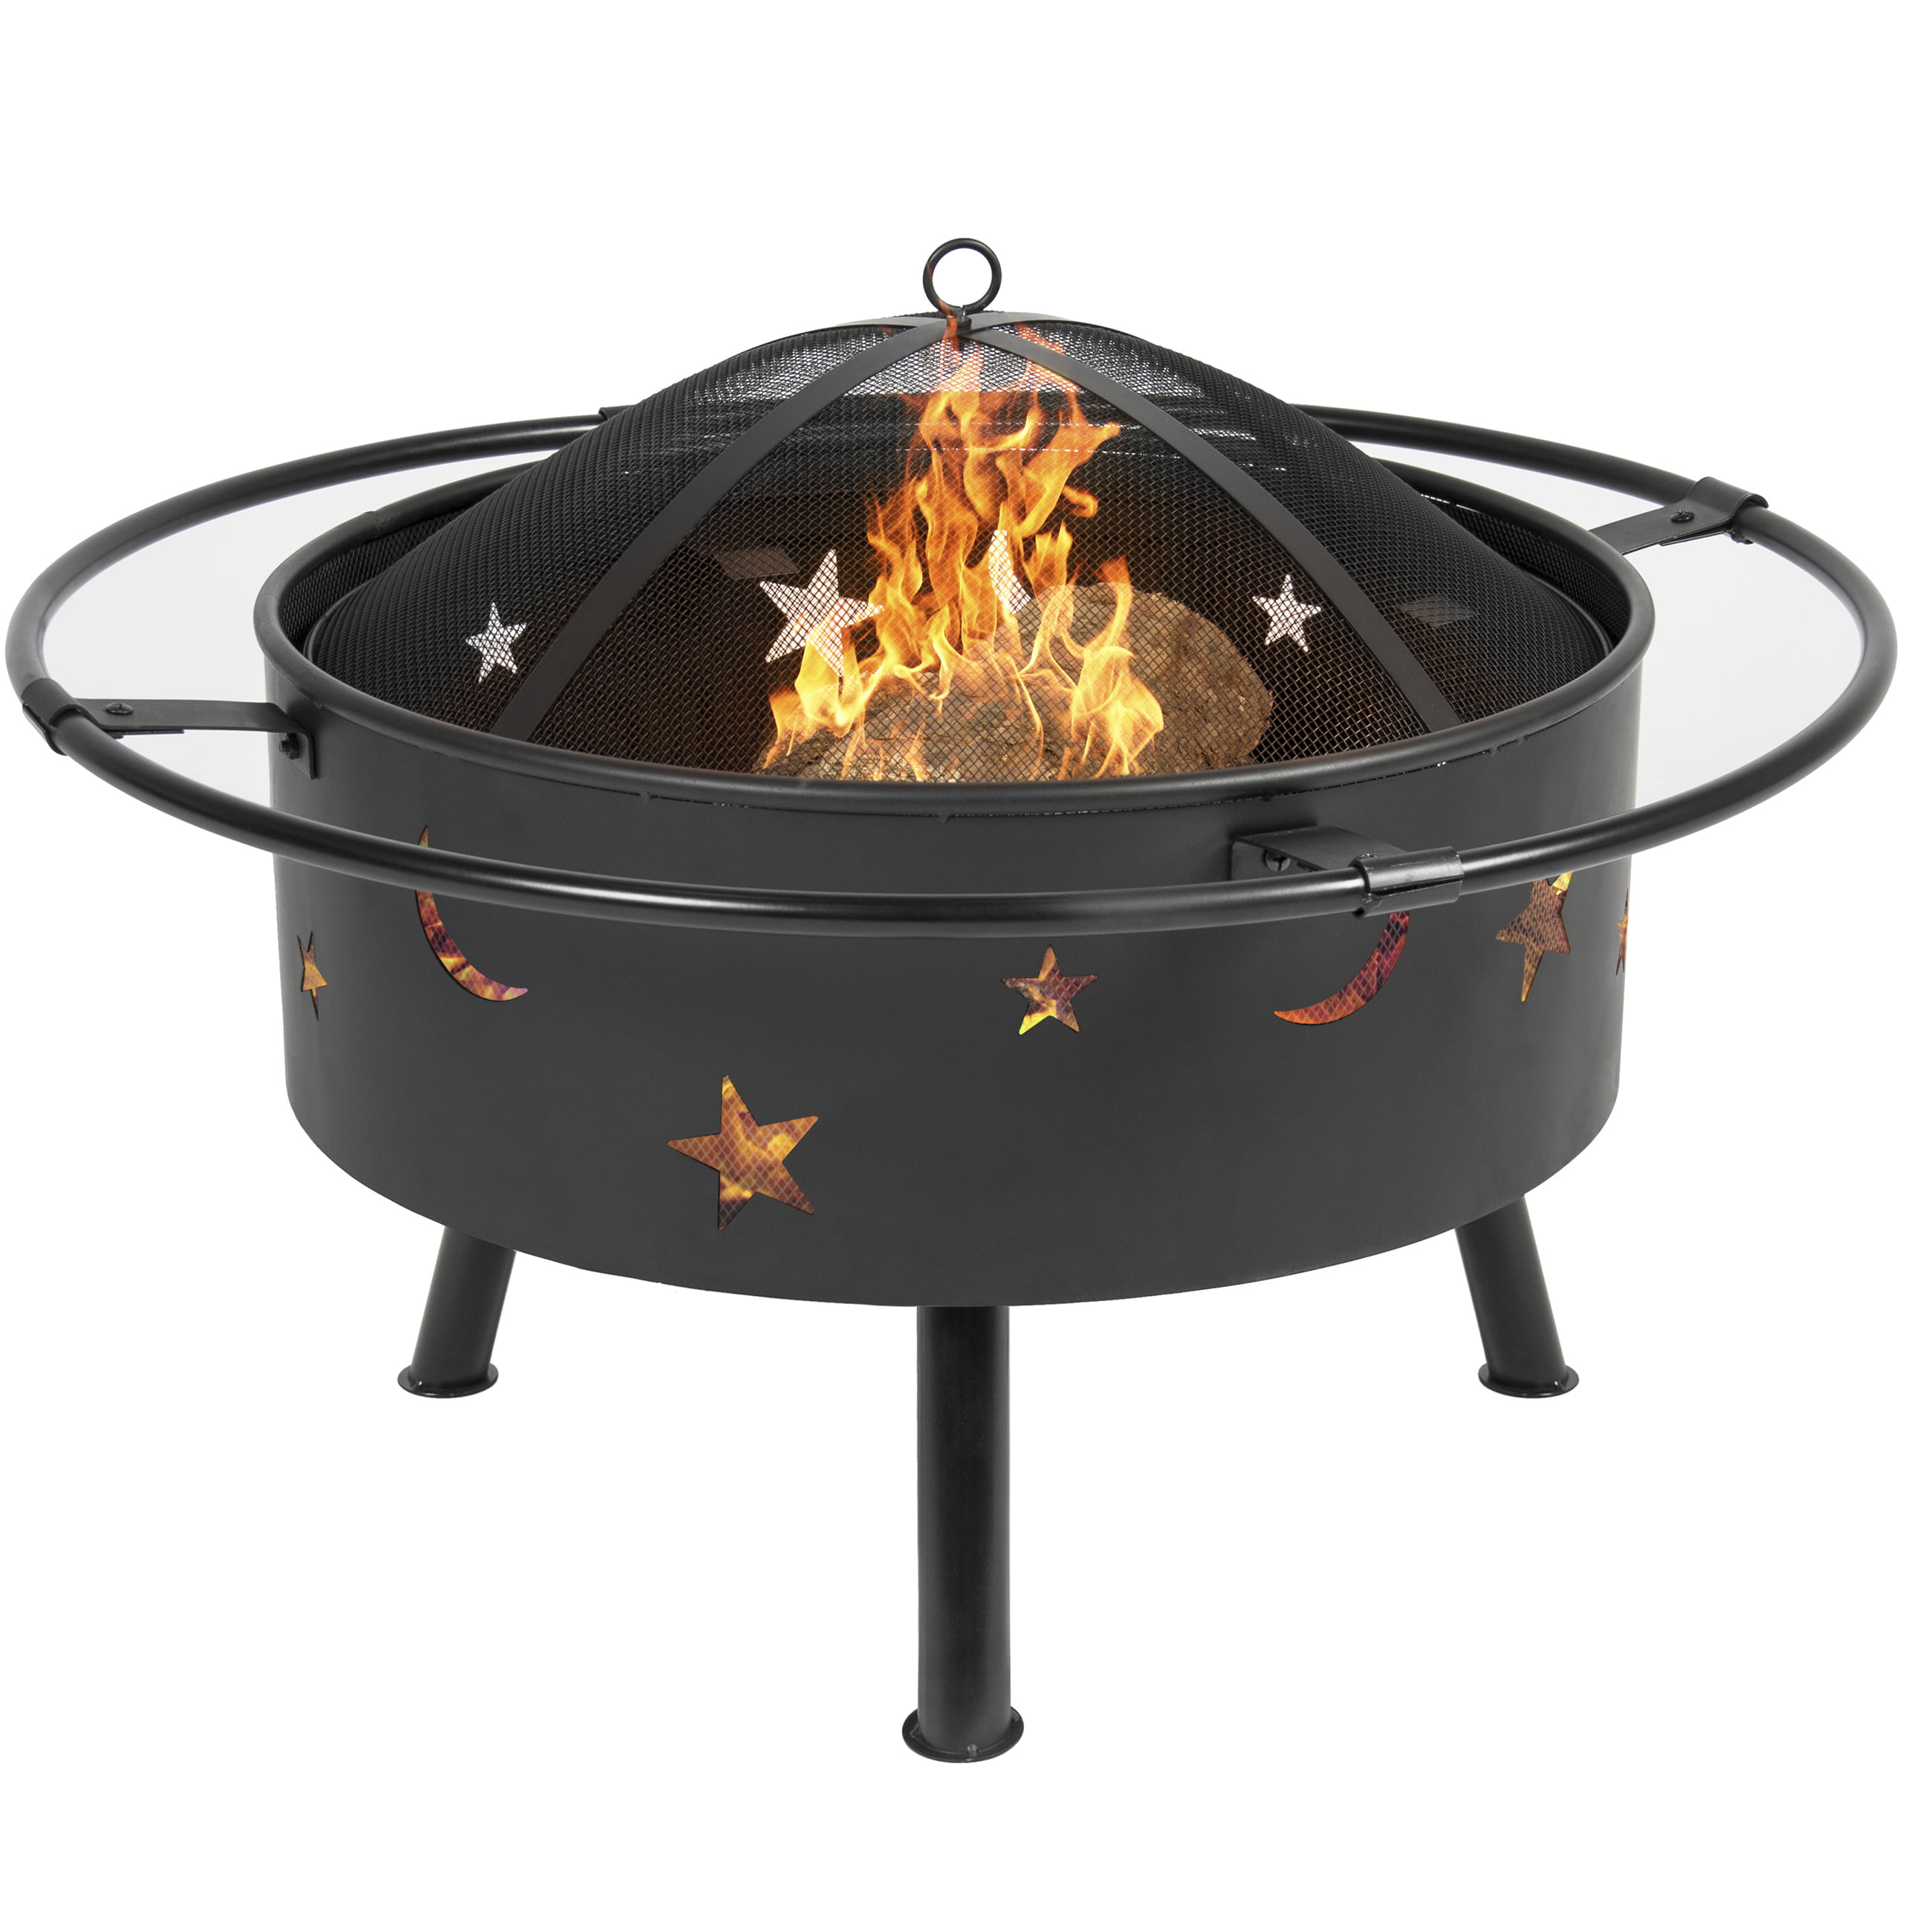 Best Choice Products 30in Outdoor Patio Firepit BBQ Grill Fire Bowl Fireplace w  Star Design Black by SKY